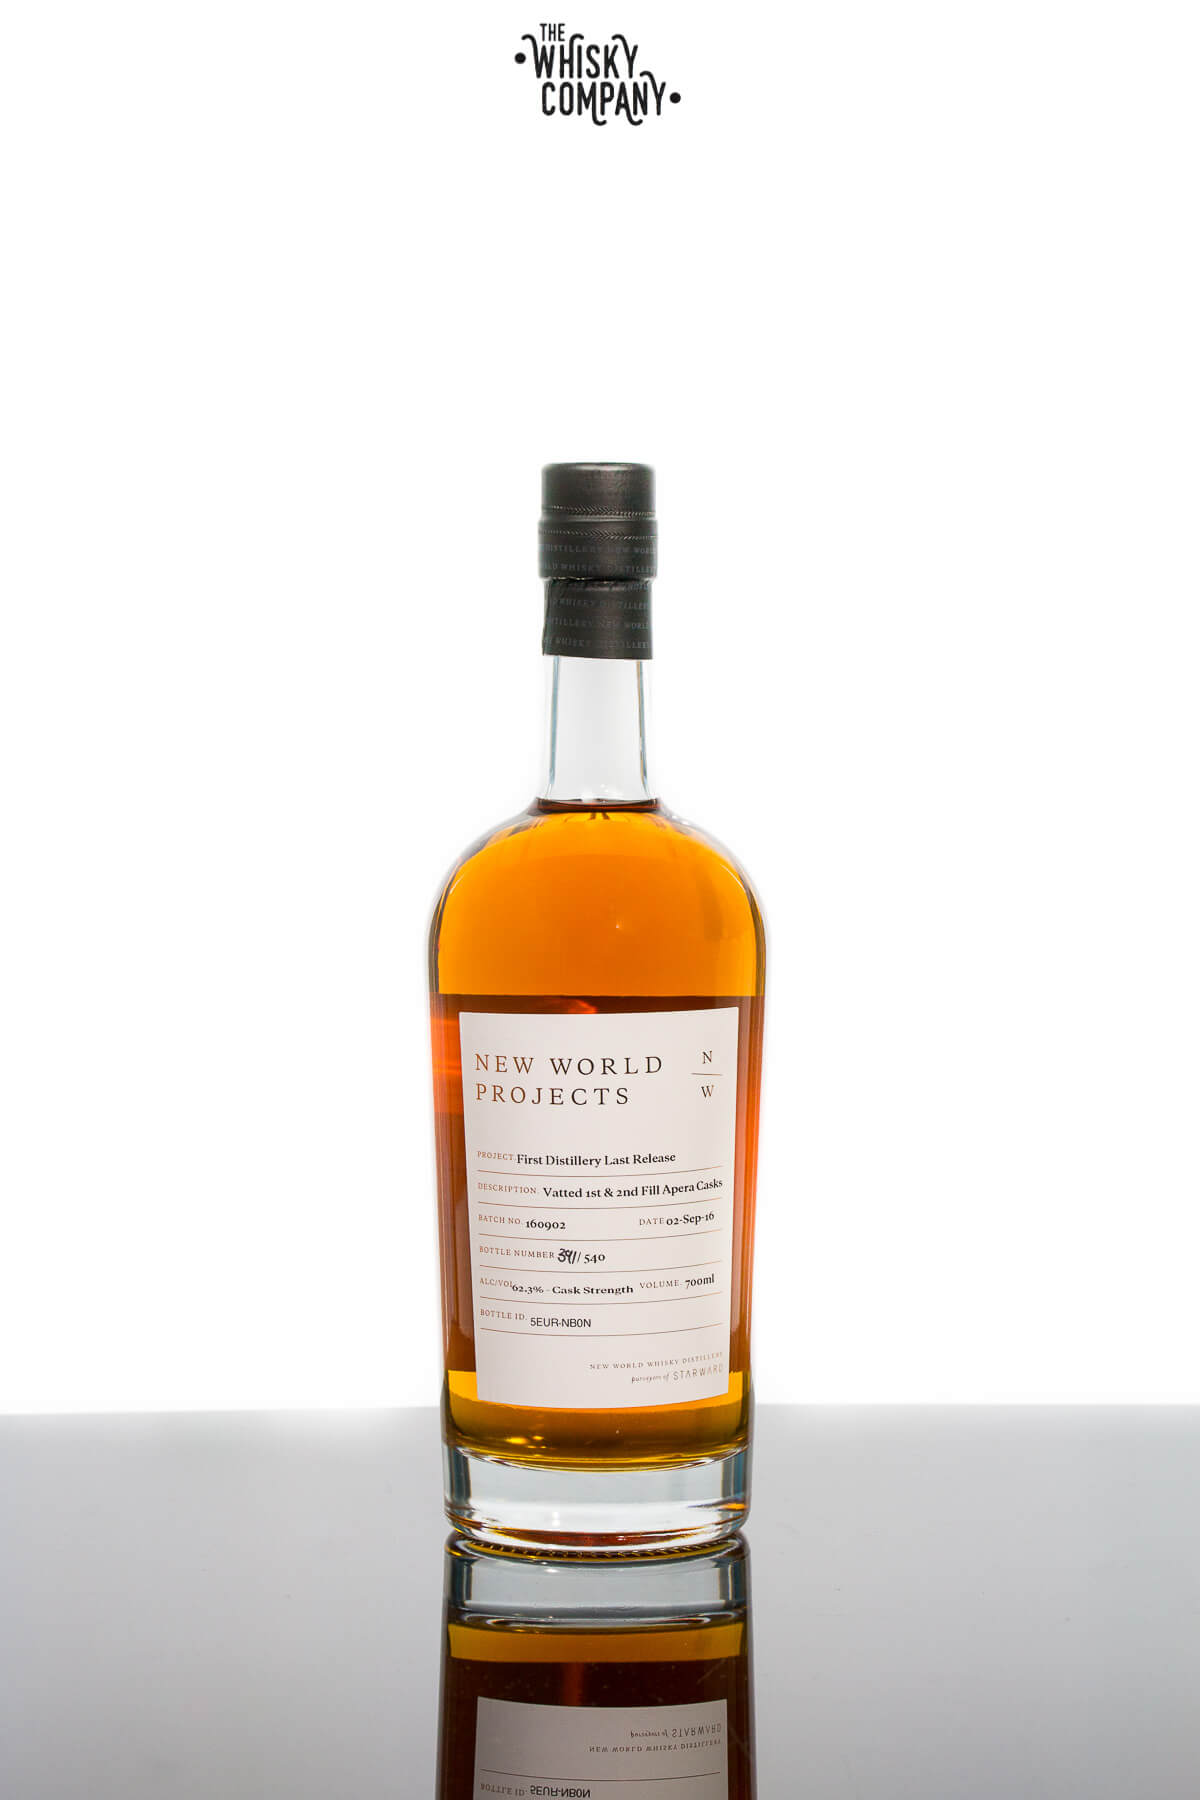 New World Projects First Distillery Last Release Cask Strength Australian Single Malt Whisky